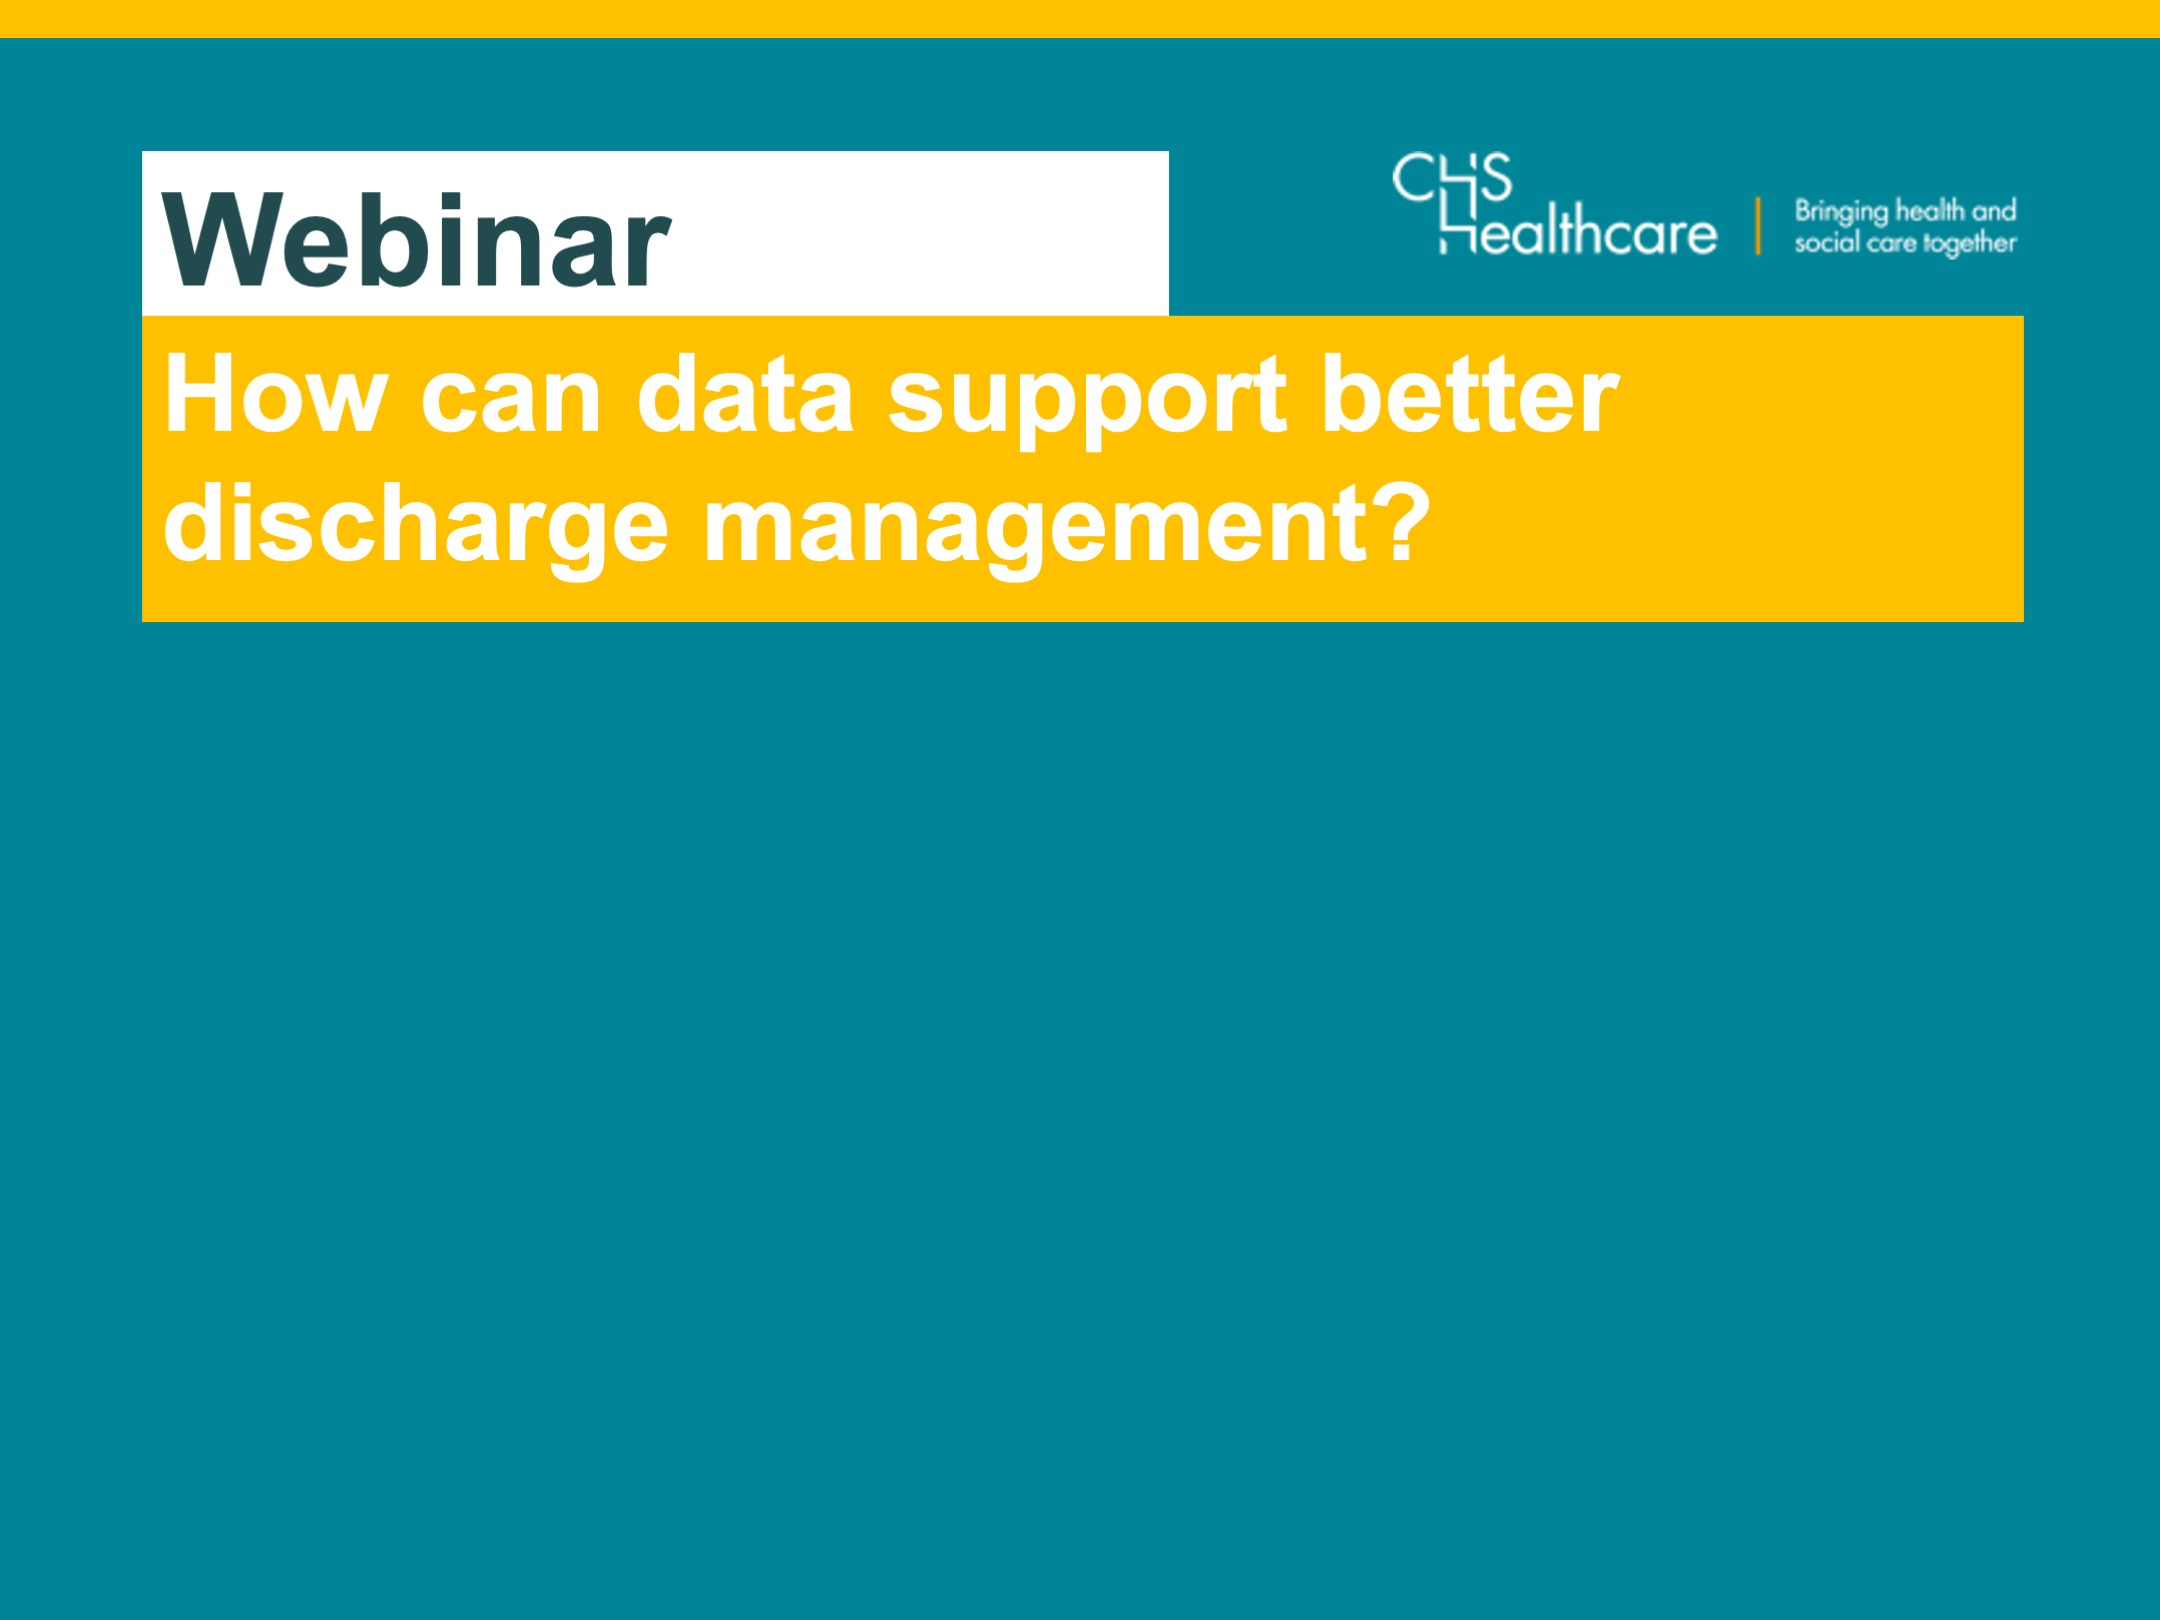 How data can support efficient discharge management